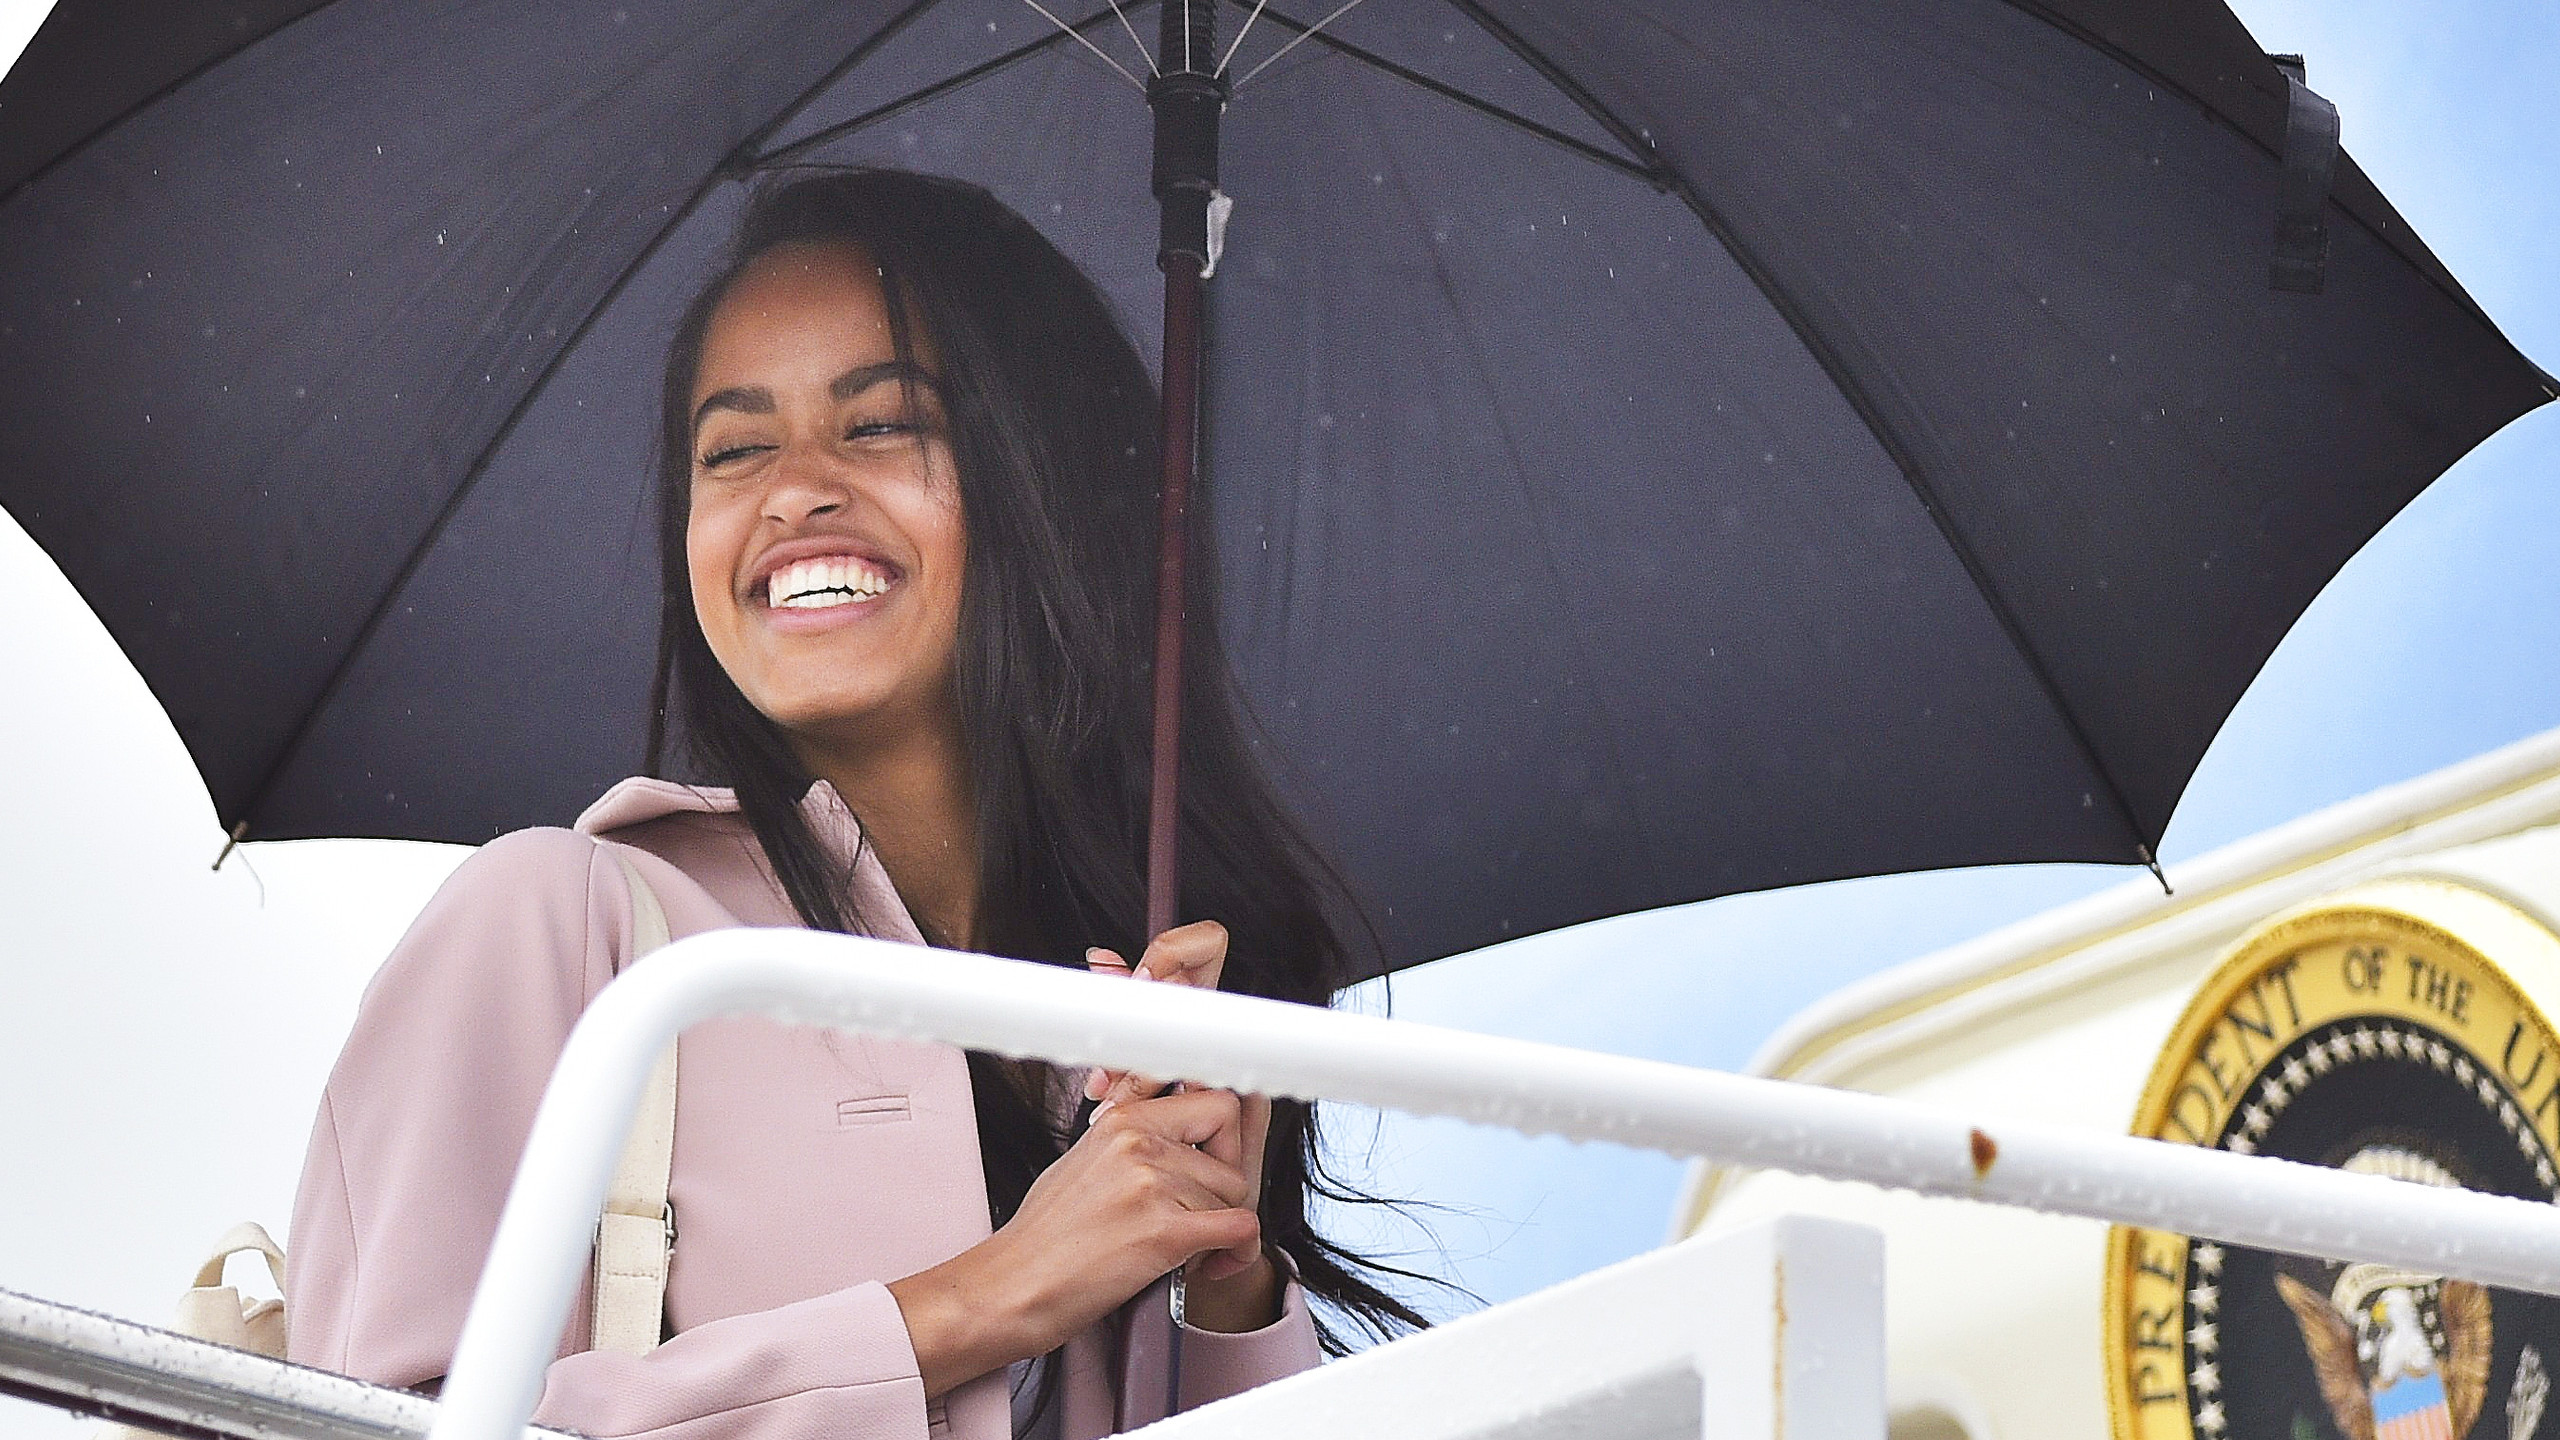 050216-lifestyle-blackgirlmagic-celebs-who-attended-ivy-league-schools-malia-obama